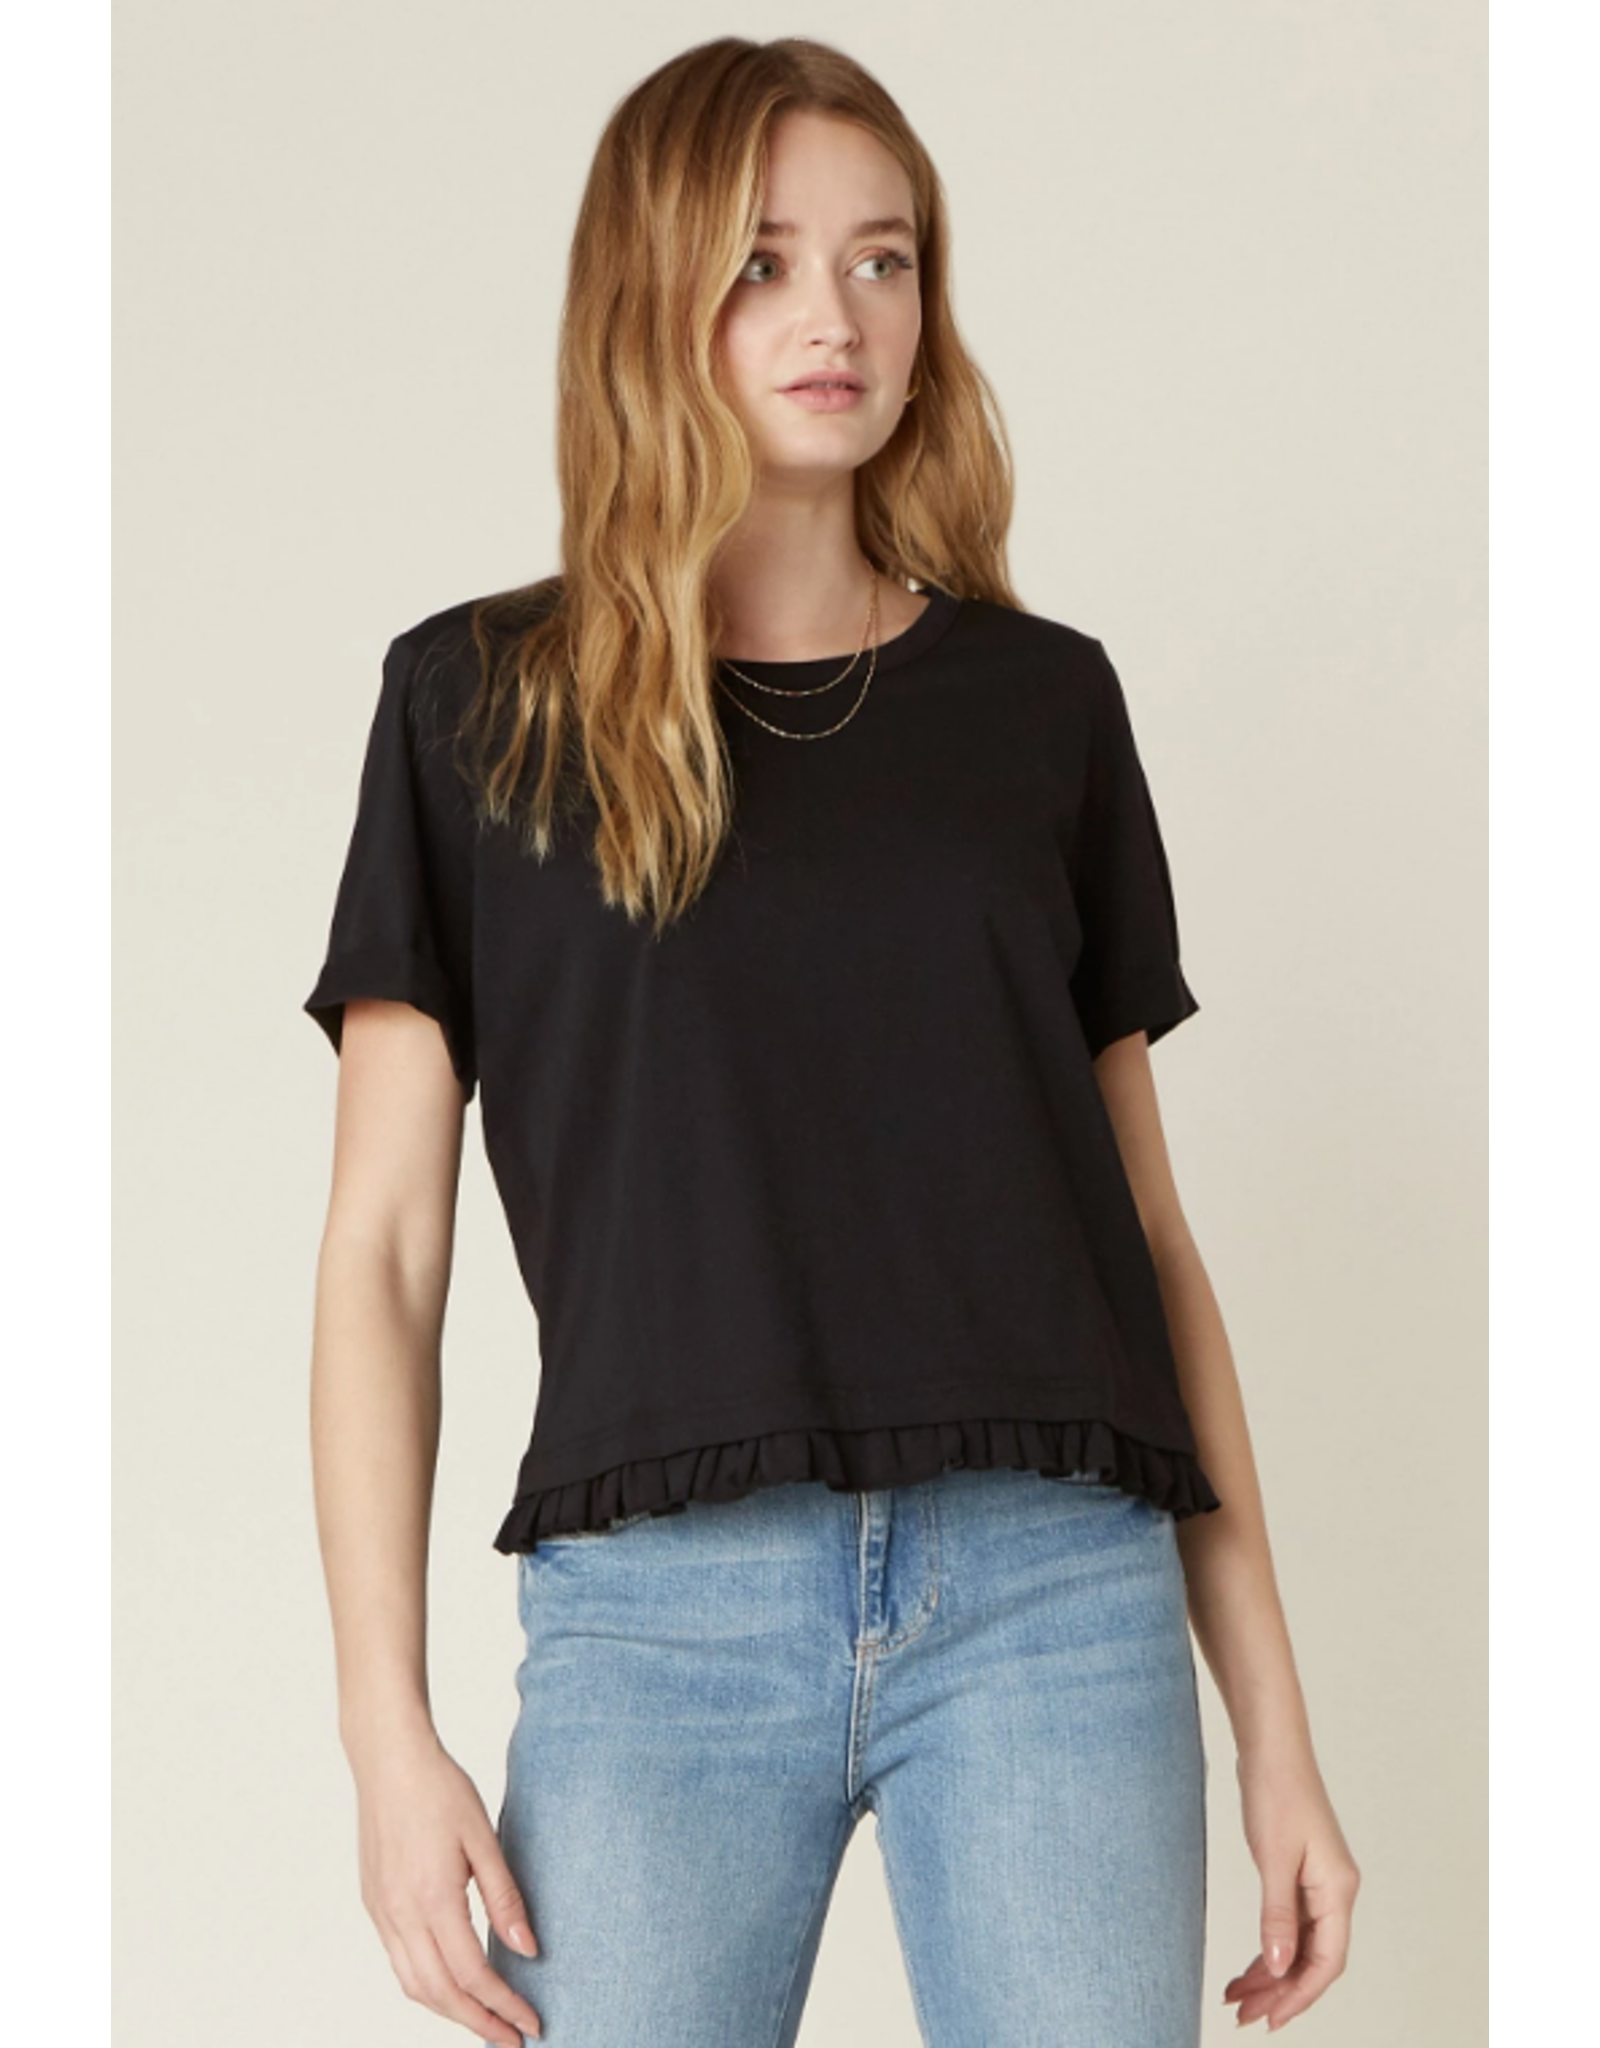 JACK BY BB DAKOTA BOXY LADY TOP